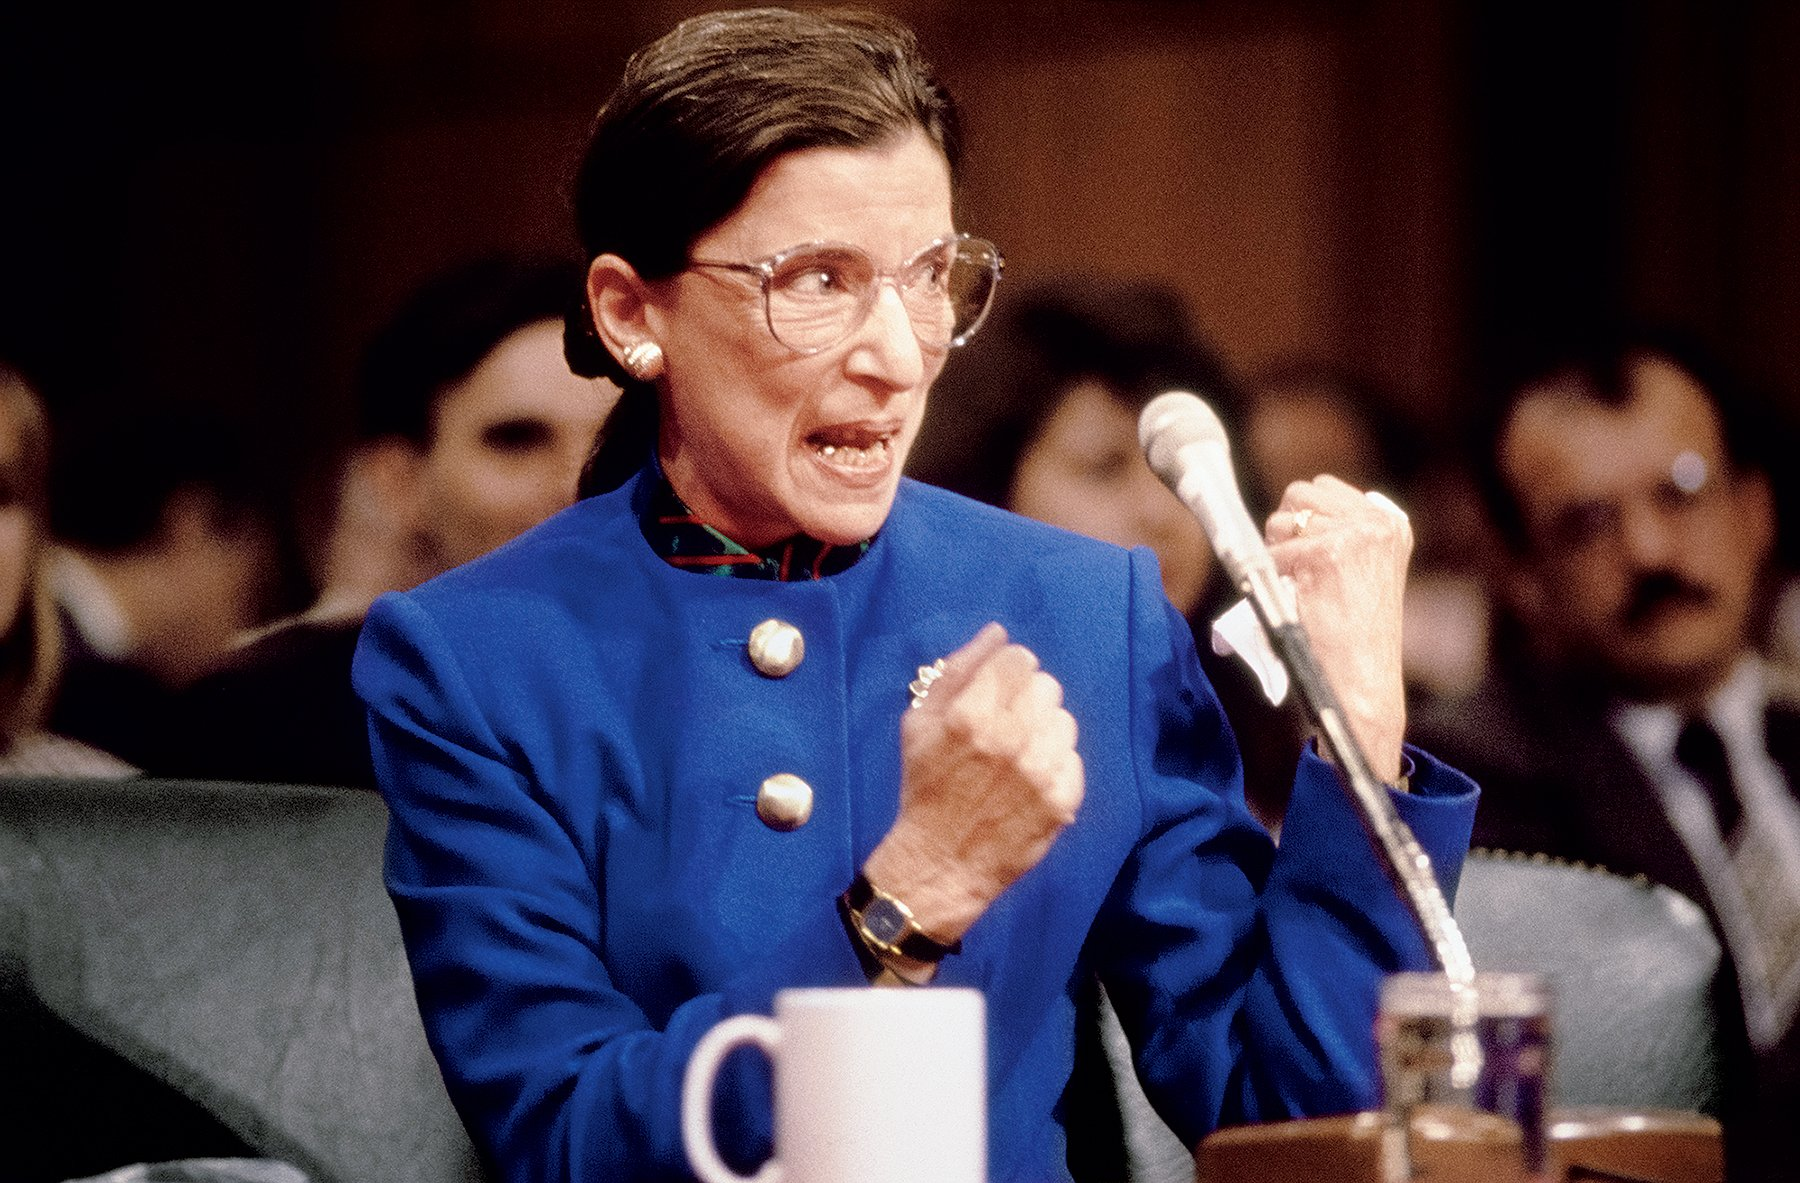 Ruth Bader Ginsburg at her 1993 Senate confirmation hearing. Photograph by Larry Downing/Newsweek.